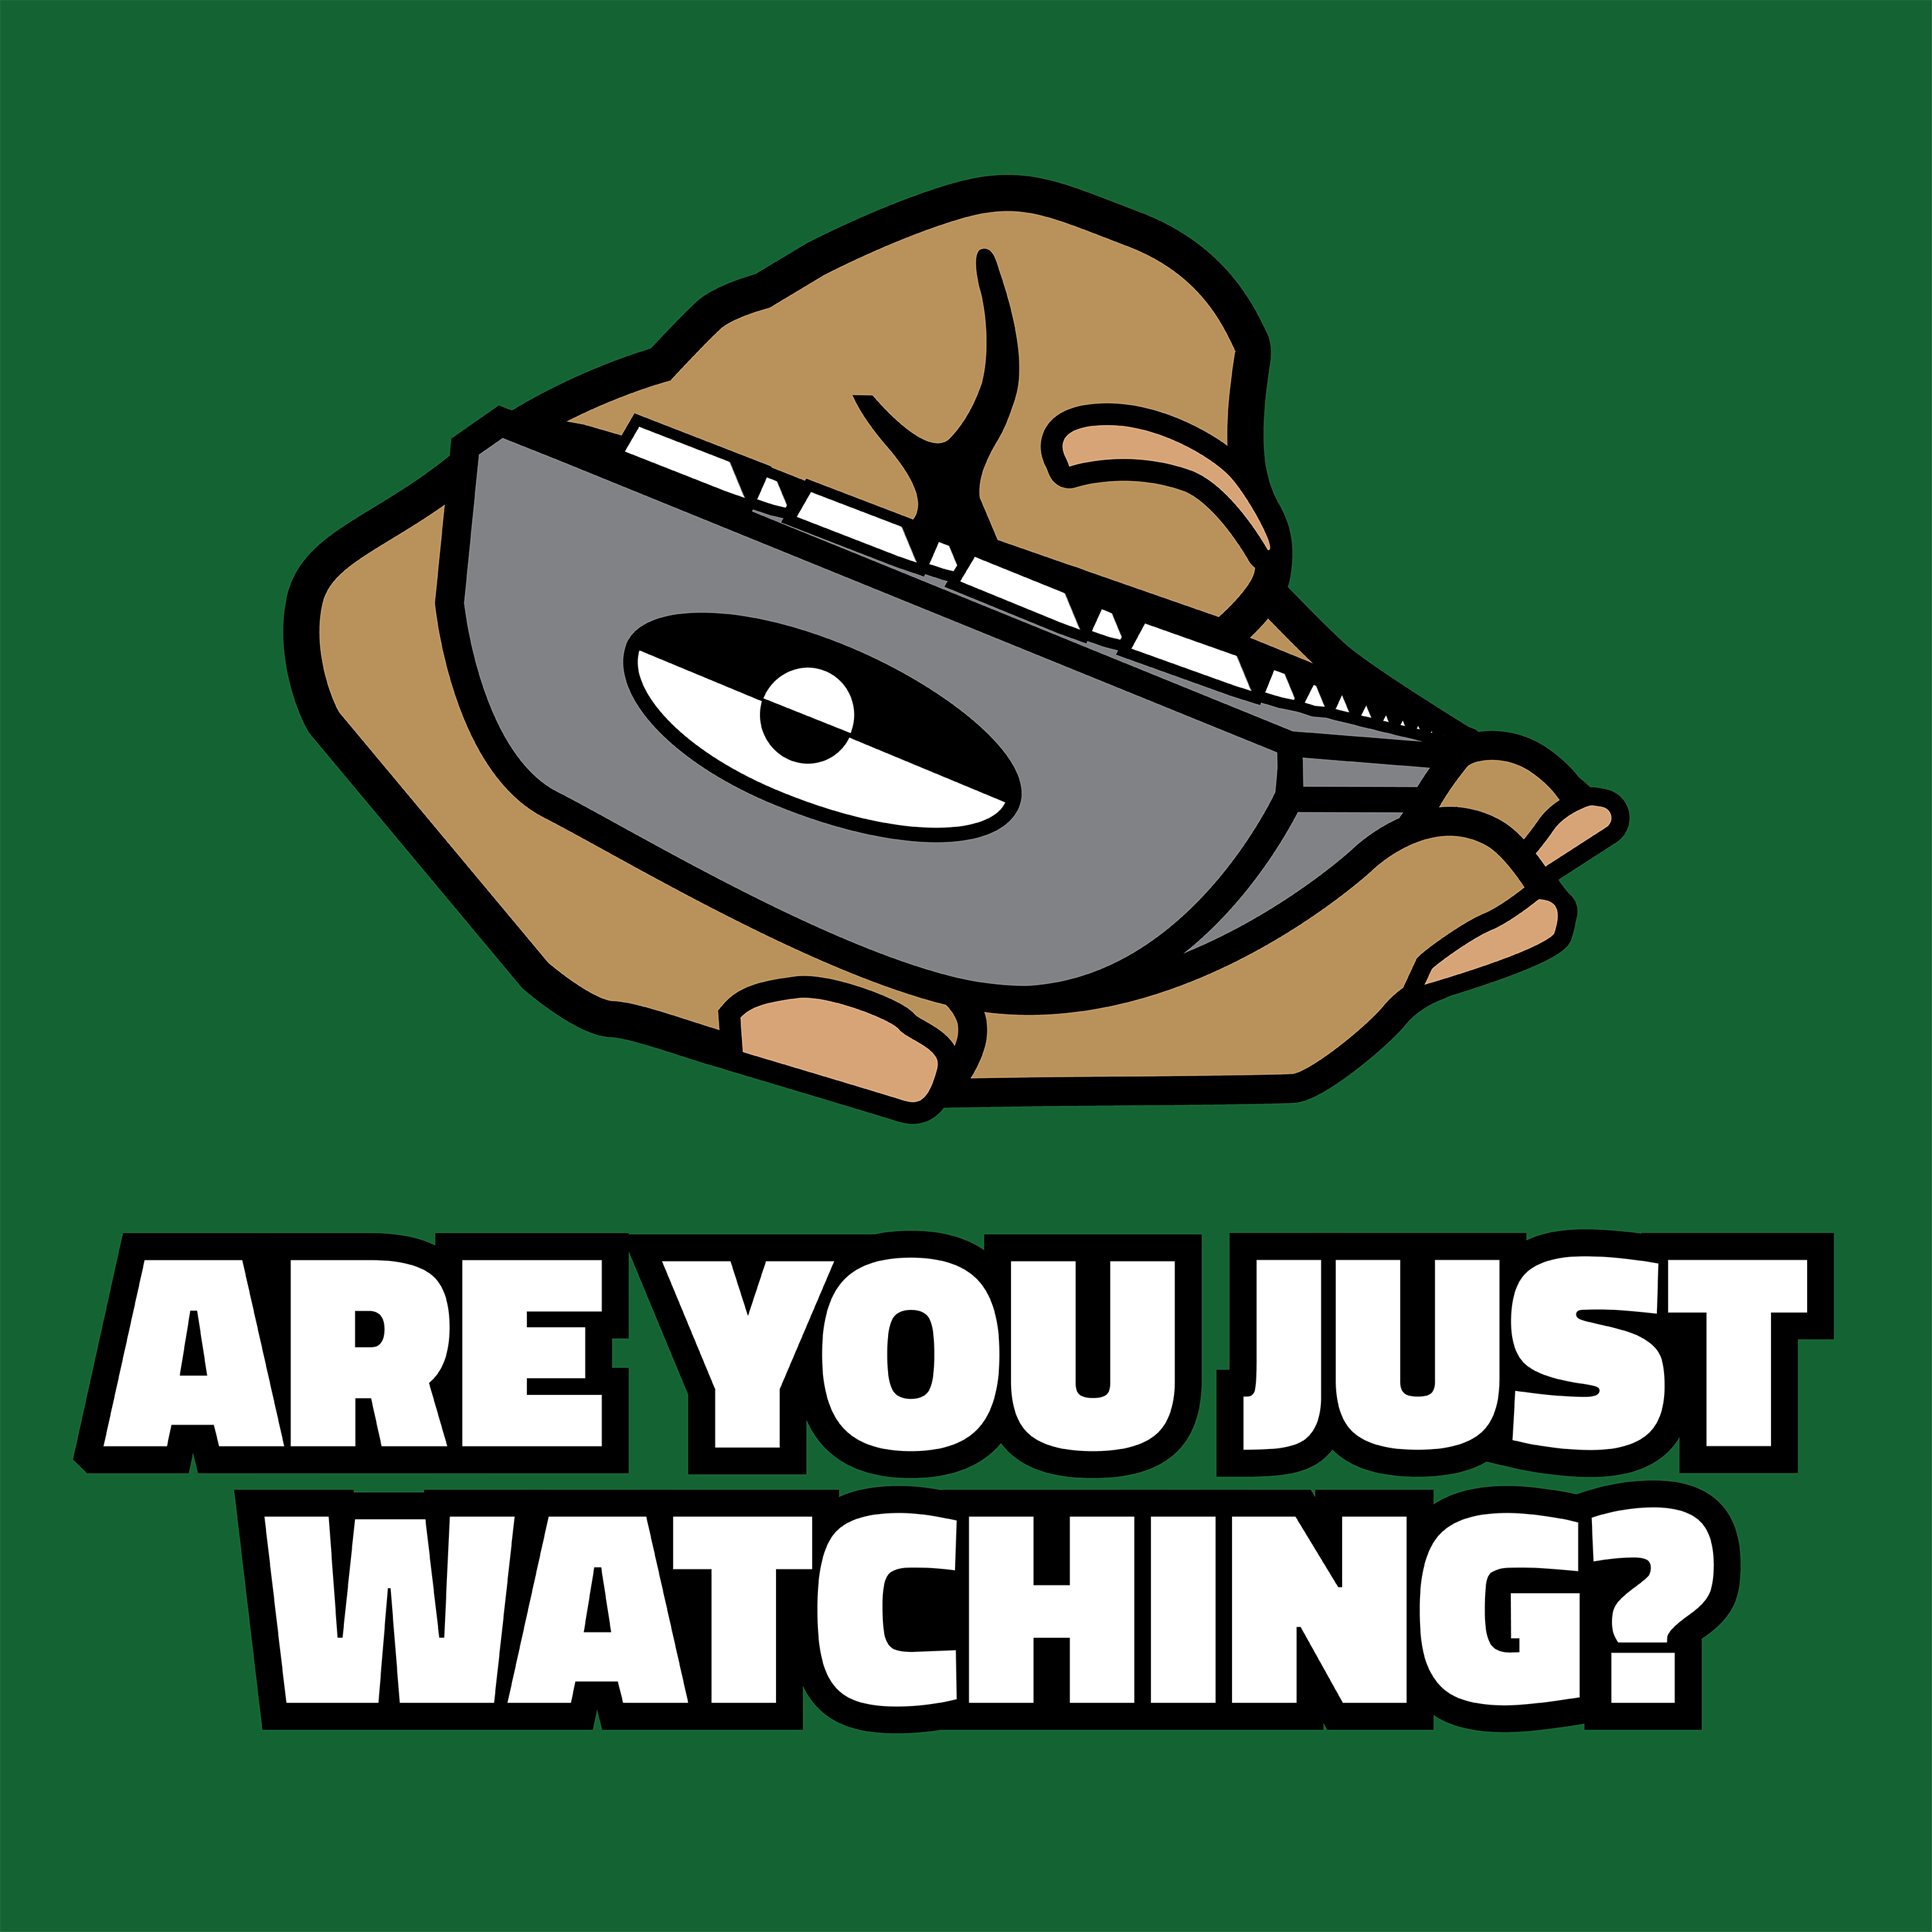 Are You Just Watching?